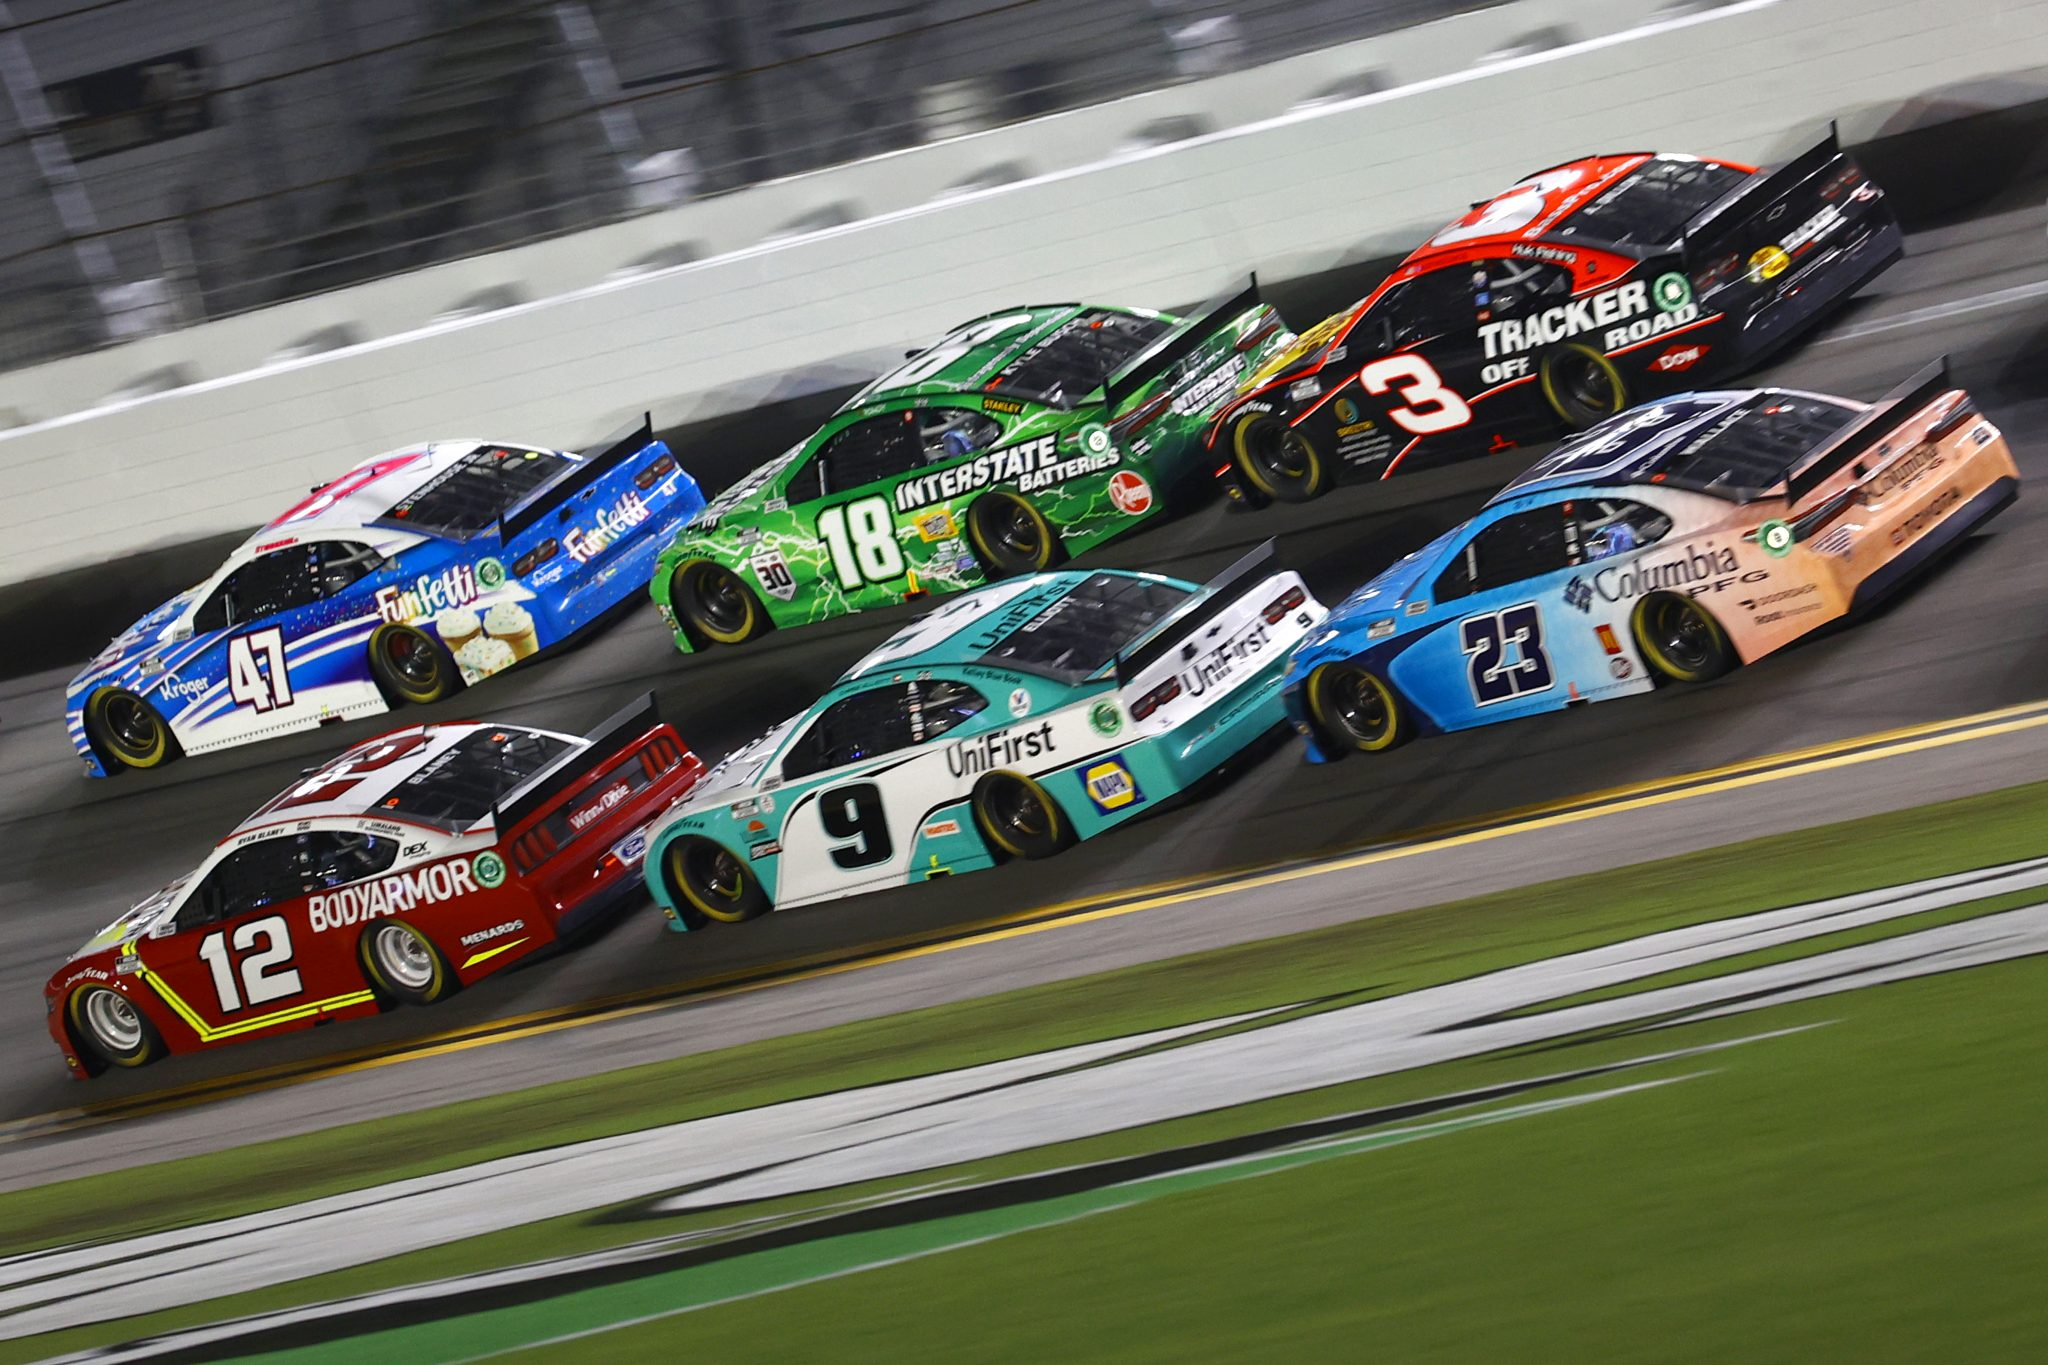 DAYTONA BEACH, FLORIDA - AUGUST 28: Ryan Blaney, driver of the #12 BodyArmor Ford, Ricky Stenhouse Jr., driver of the #47 Funfetti Chevrolet, Kyle Busch, driver of the #18 Interstate Batteries Toyota, Chase Elliott, driver of the #9 UniFirst Chevrolet, Austin Dillon, driver of the #3 Bass Pro Shops/Tracker Off Road Chevrolet, and Bubba Wallace, driver of the #23 Columbia PFG Toyota, race during the NASCAR Cup Series Coke Zero Sugar 400 at Daytona International Speedway on August 28, 2021 in Daytona Beach, Florida. (Photo by Jared C. Tilton/Getty Images) | Getty Images